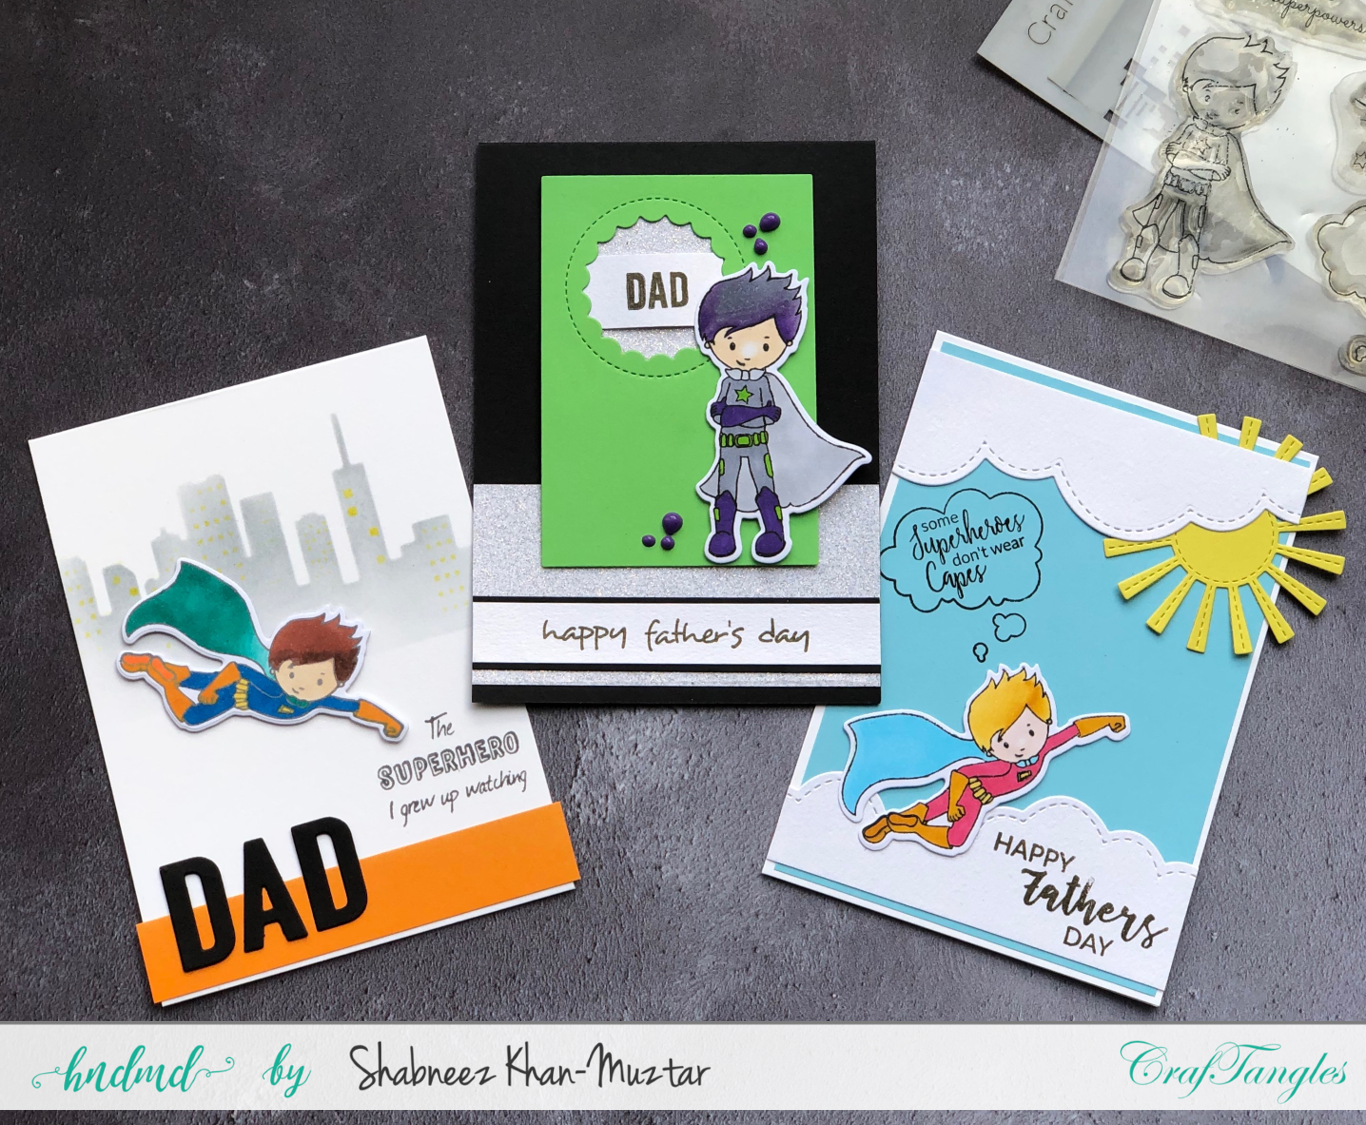 My Dad The Superhero! - A Set of Father's Day Cards 1